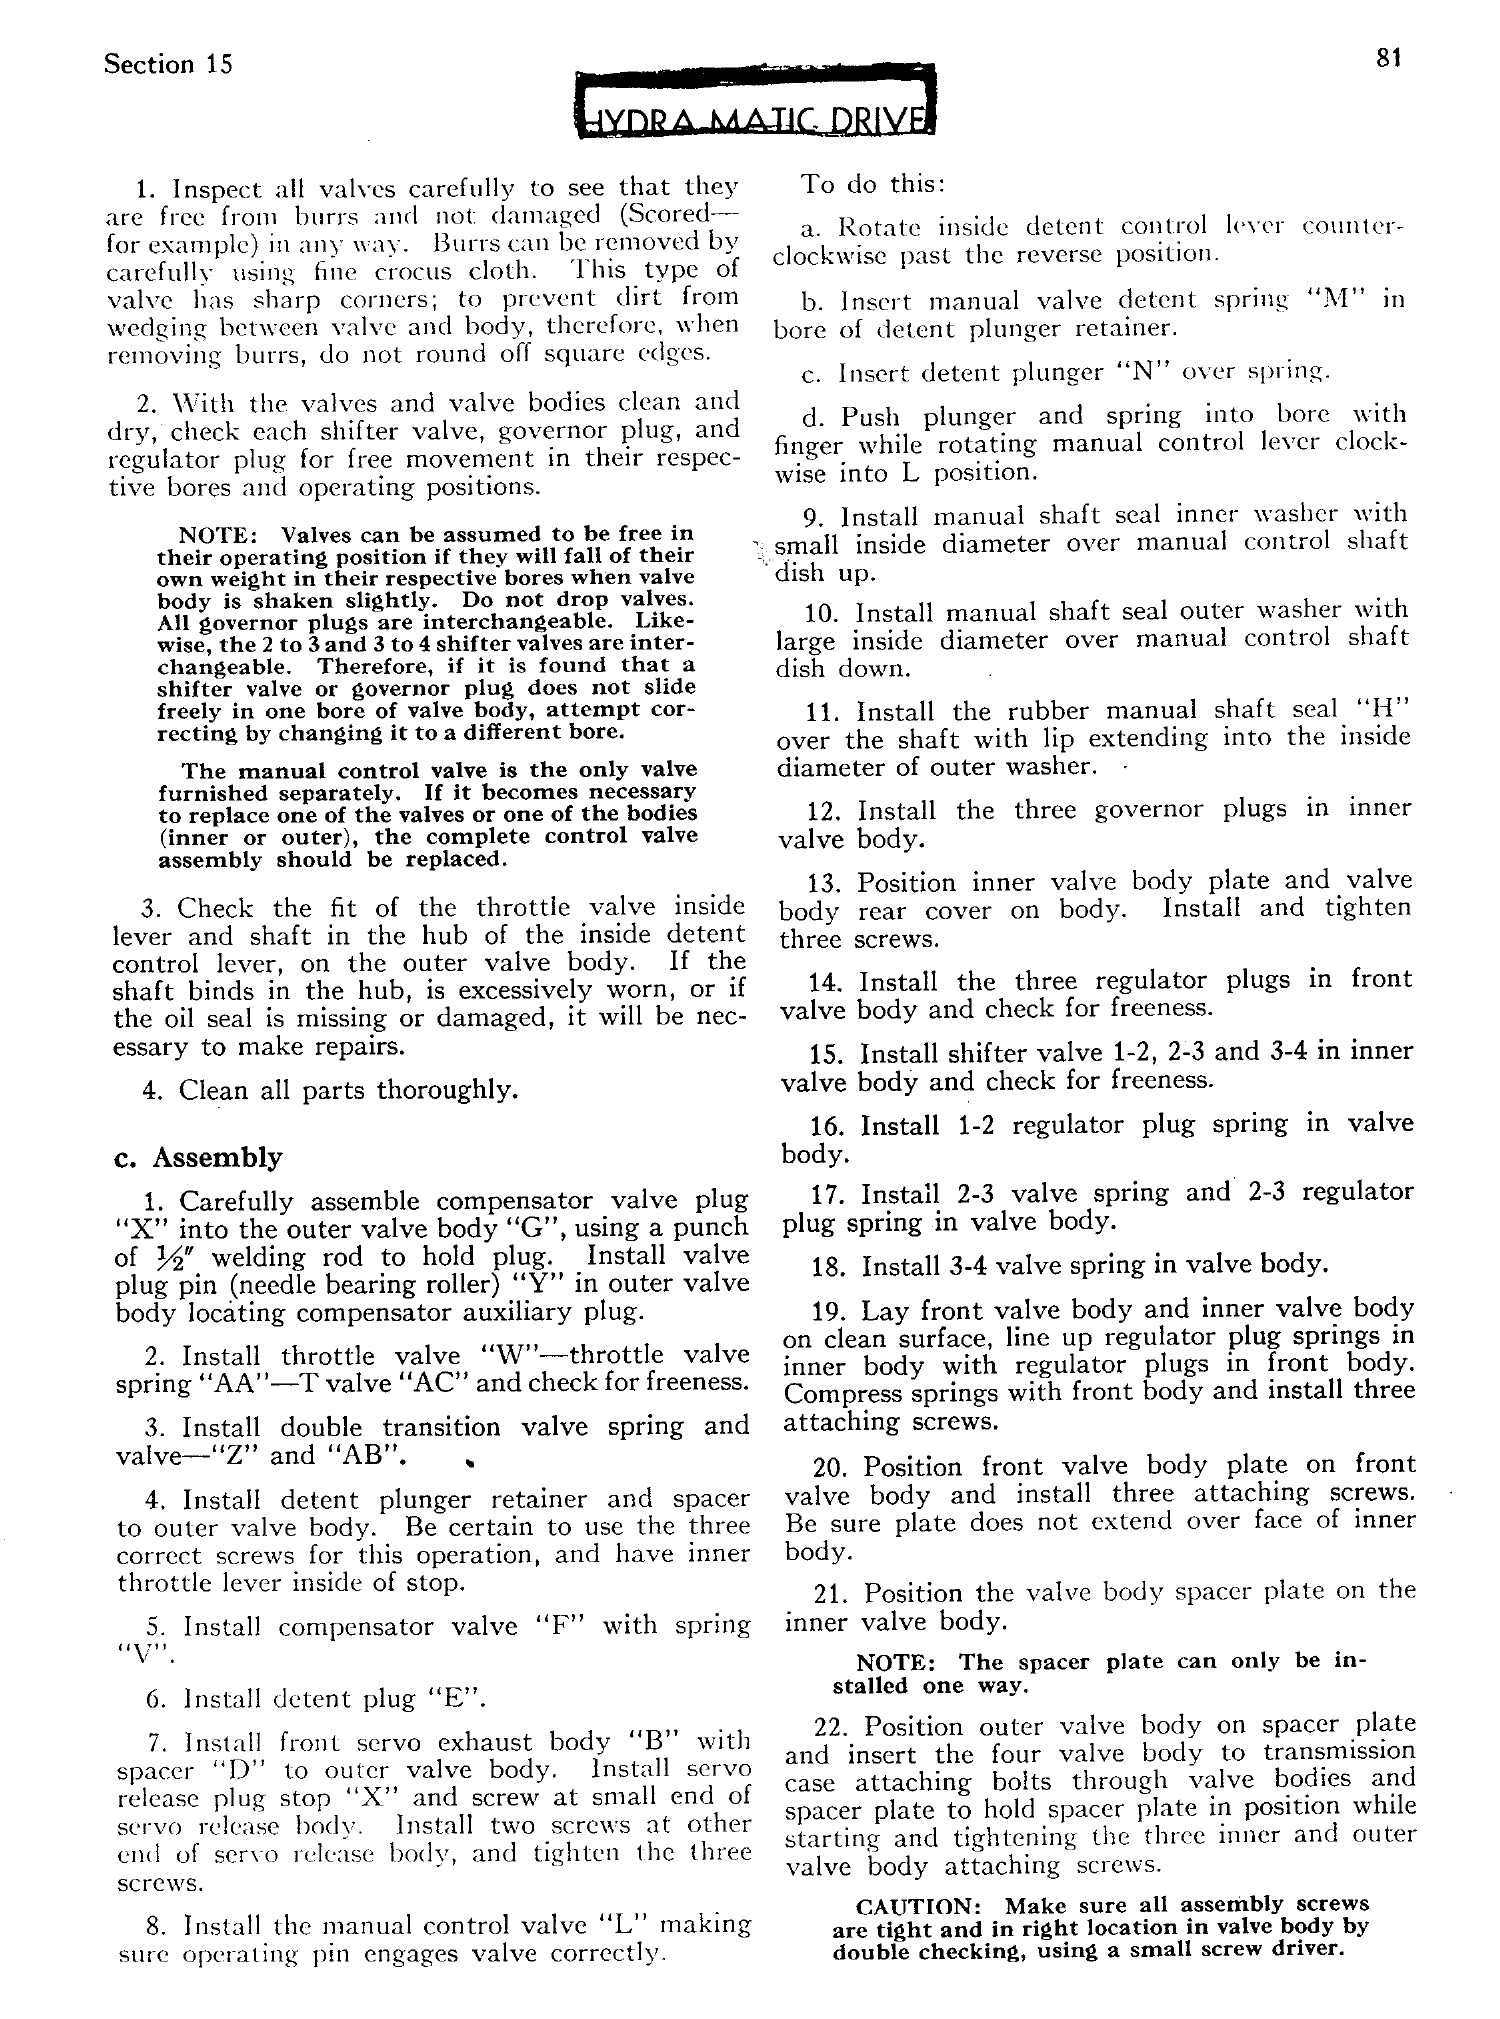 1951 Cadillac Shop Manual- Supplement Page 82 of 113